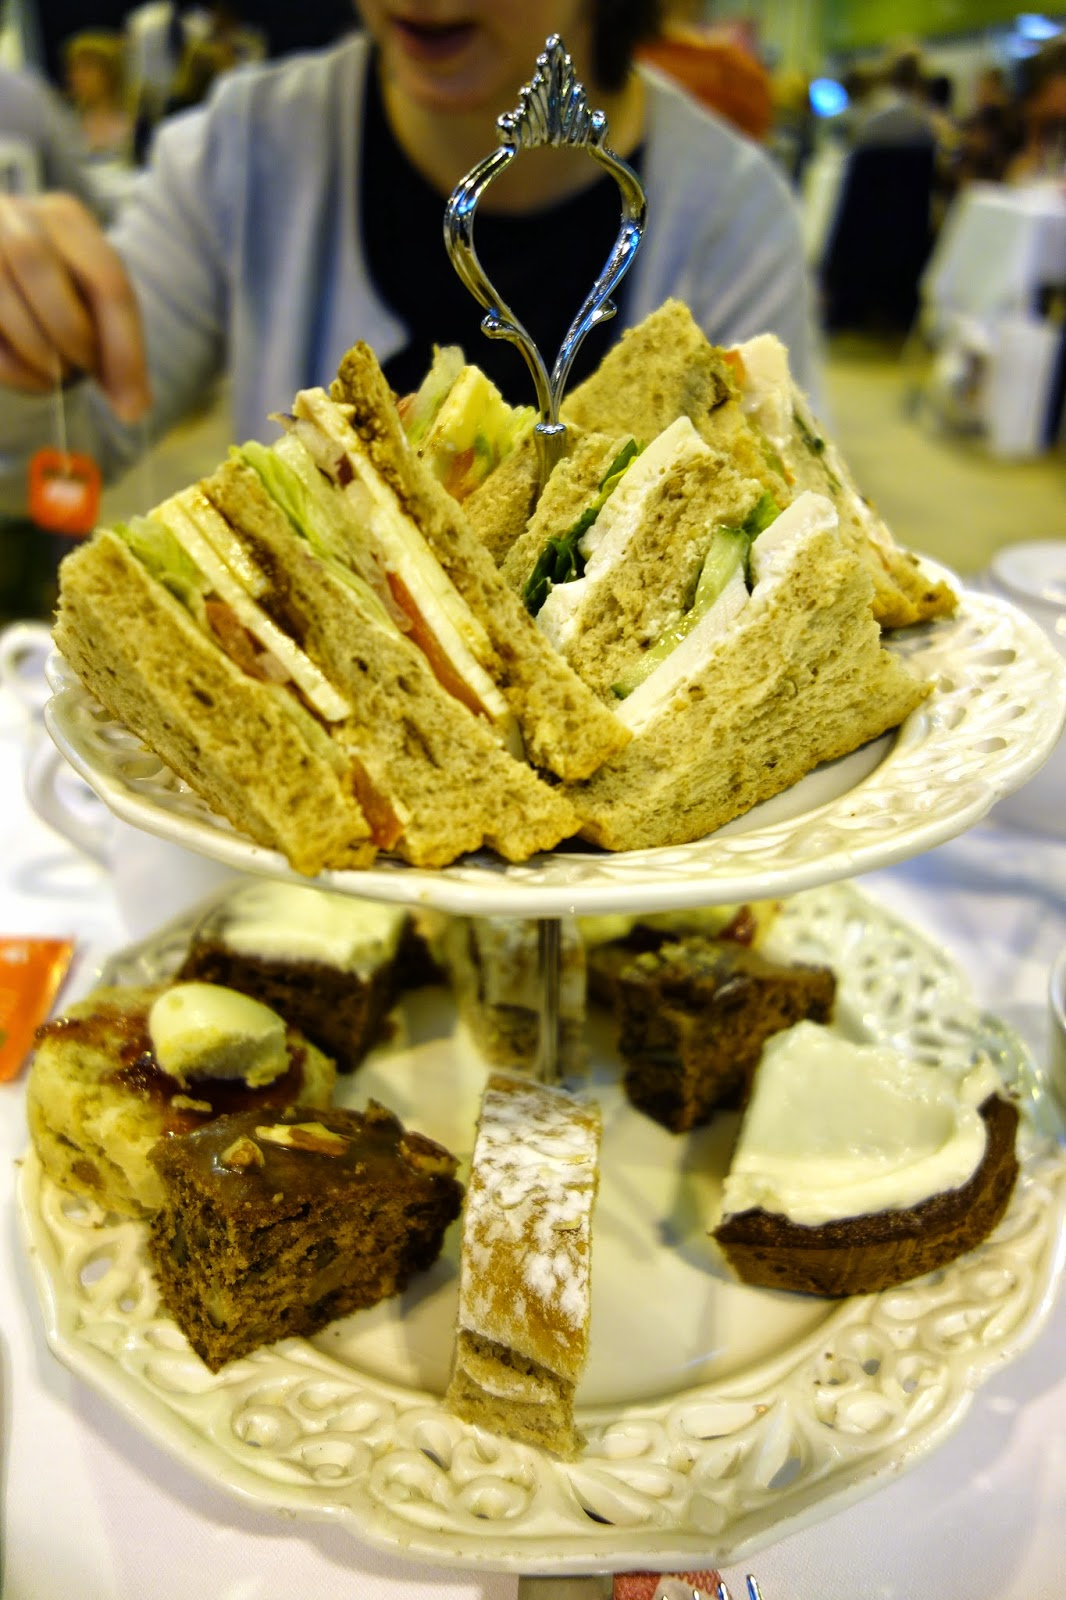 Afternooon Tea tiers of cakes and sandwiches